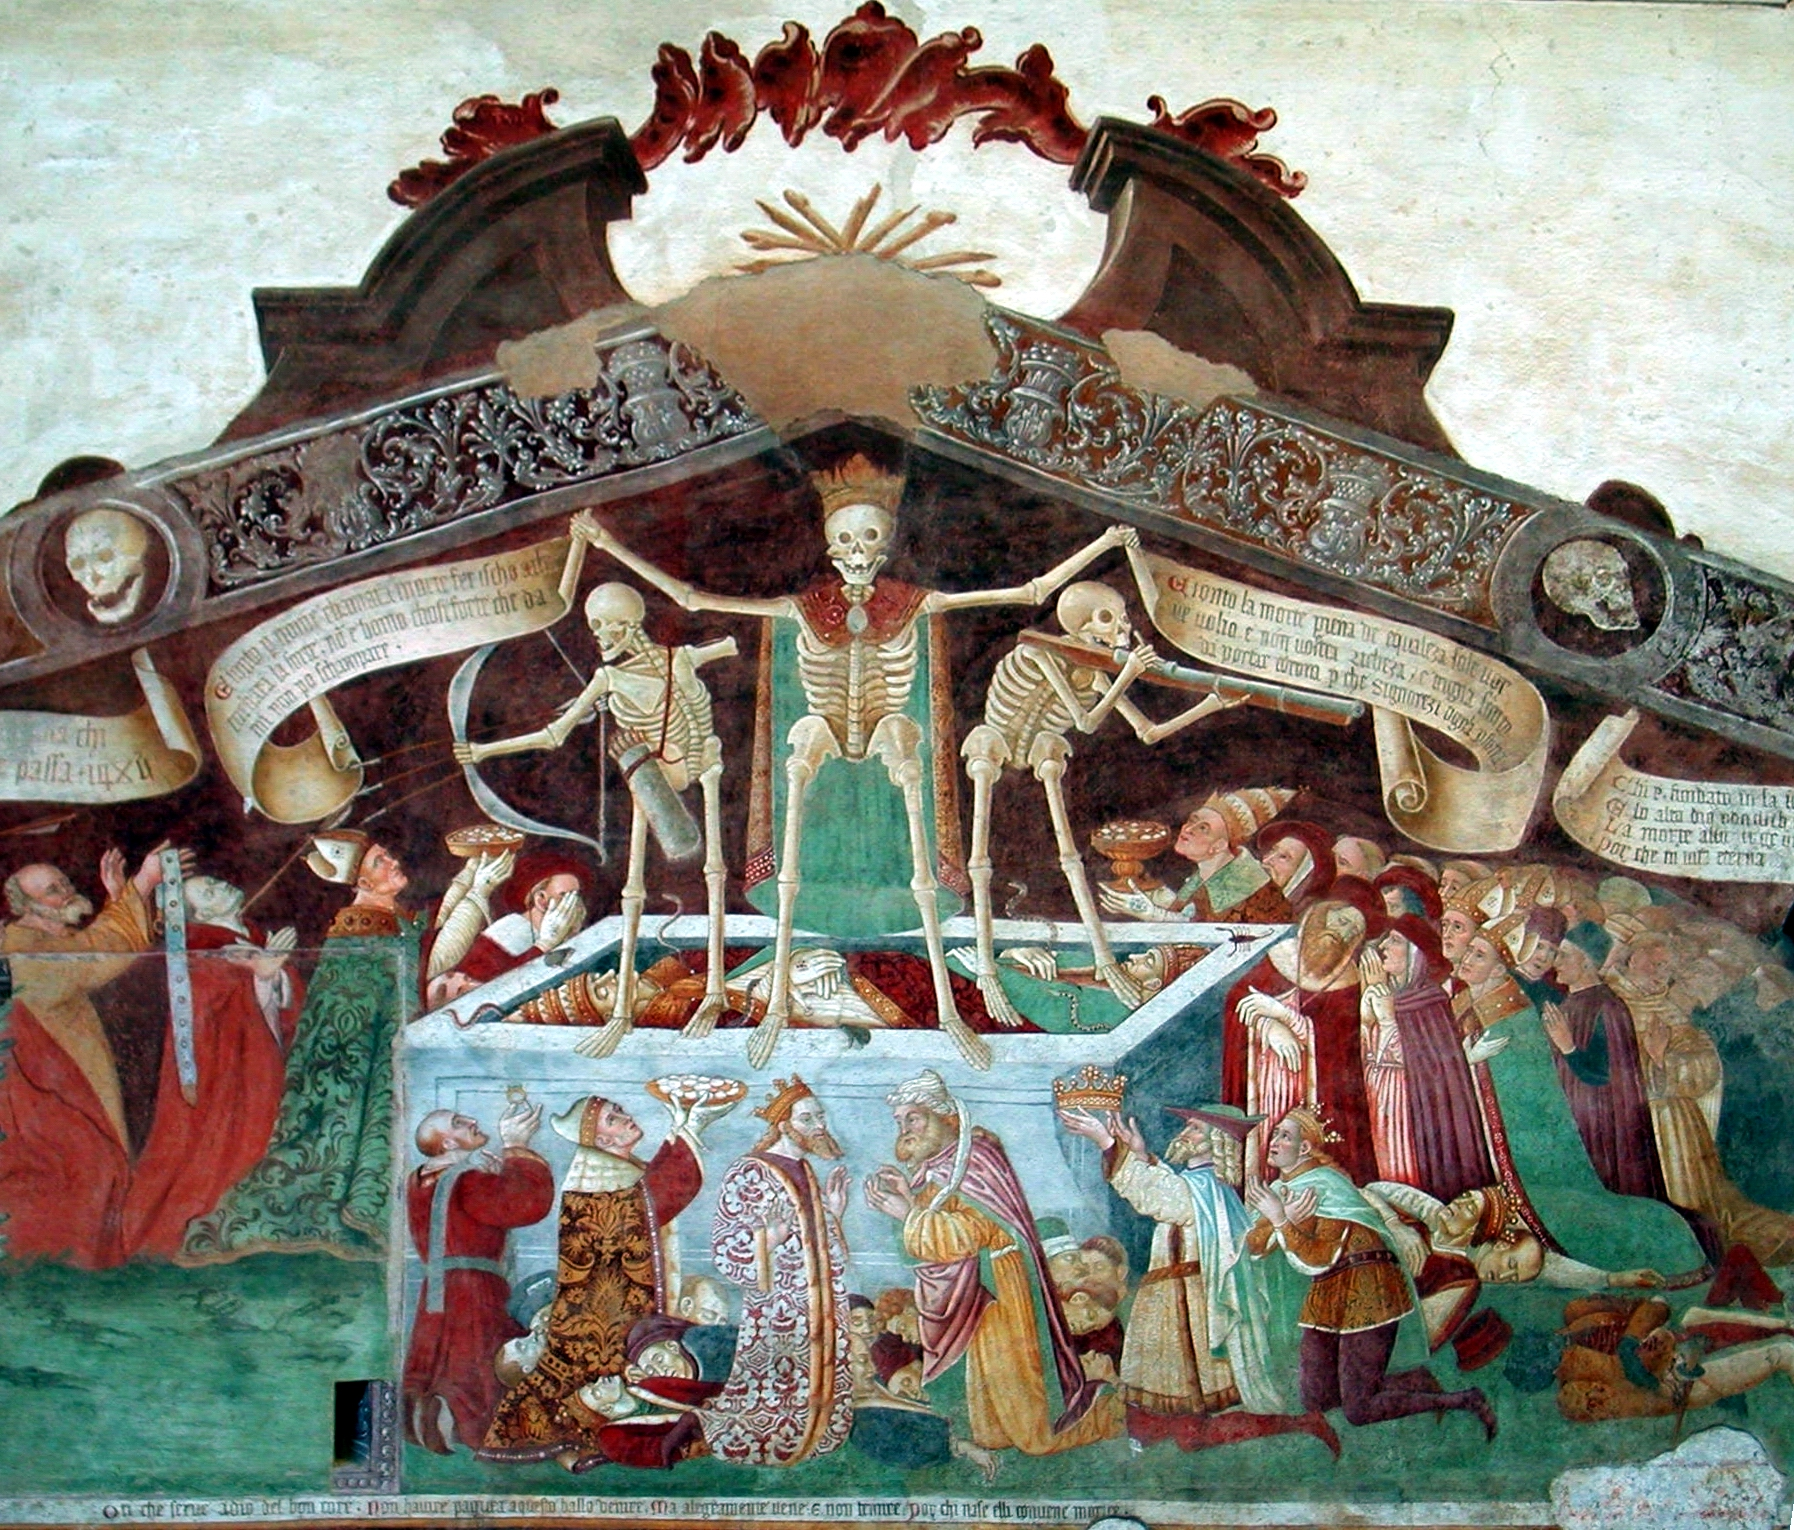 Speaking of spooky: the Trionfo della Morte, a fresco on the façade of the Oratorio